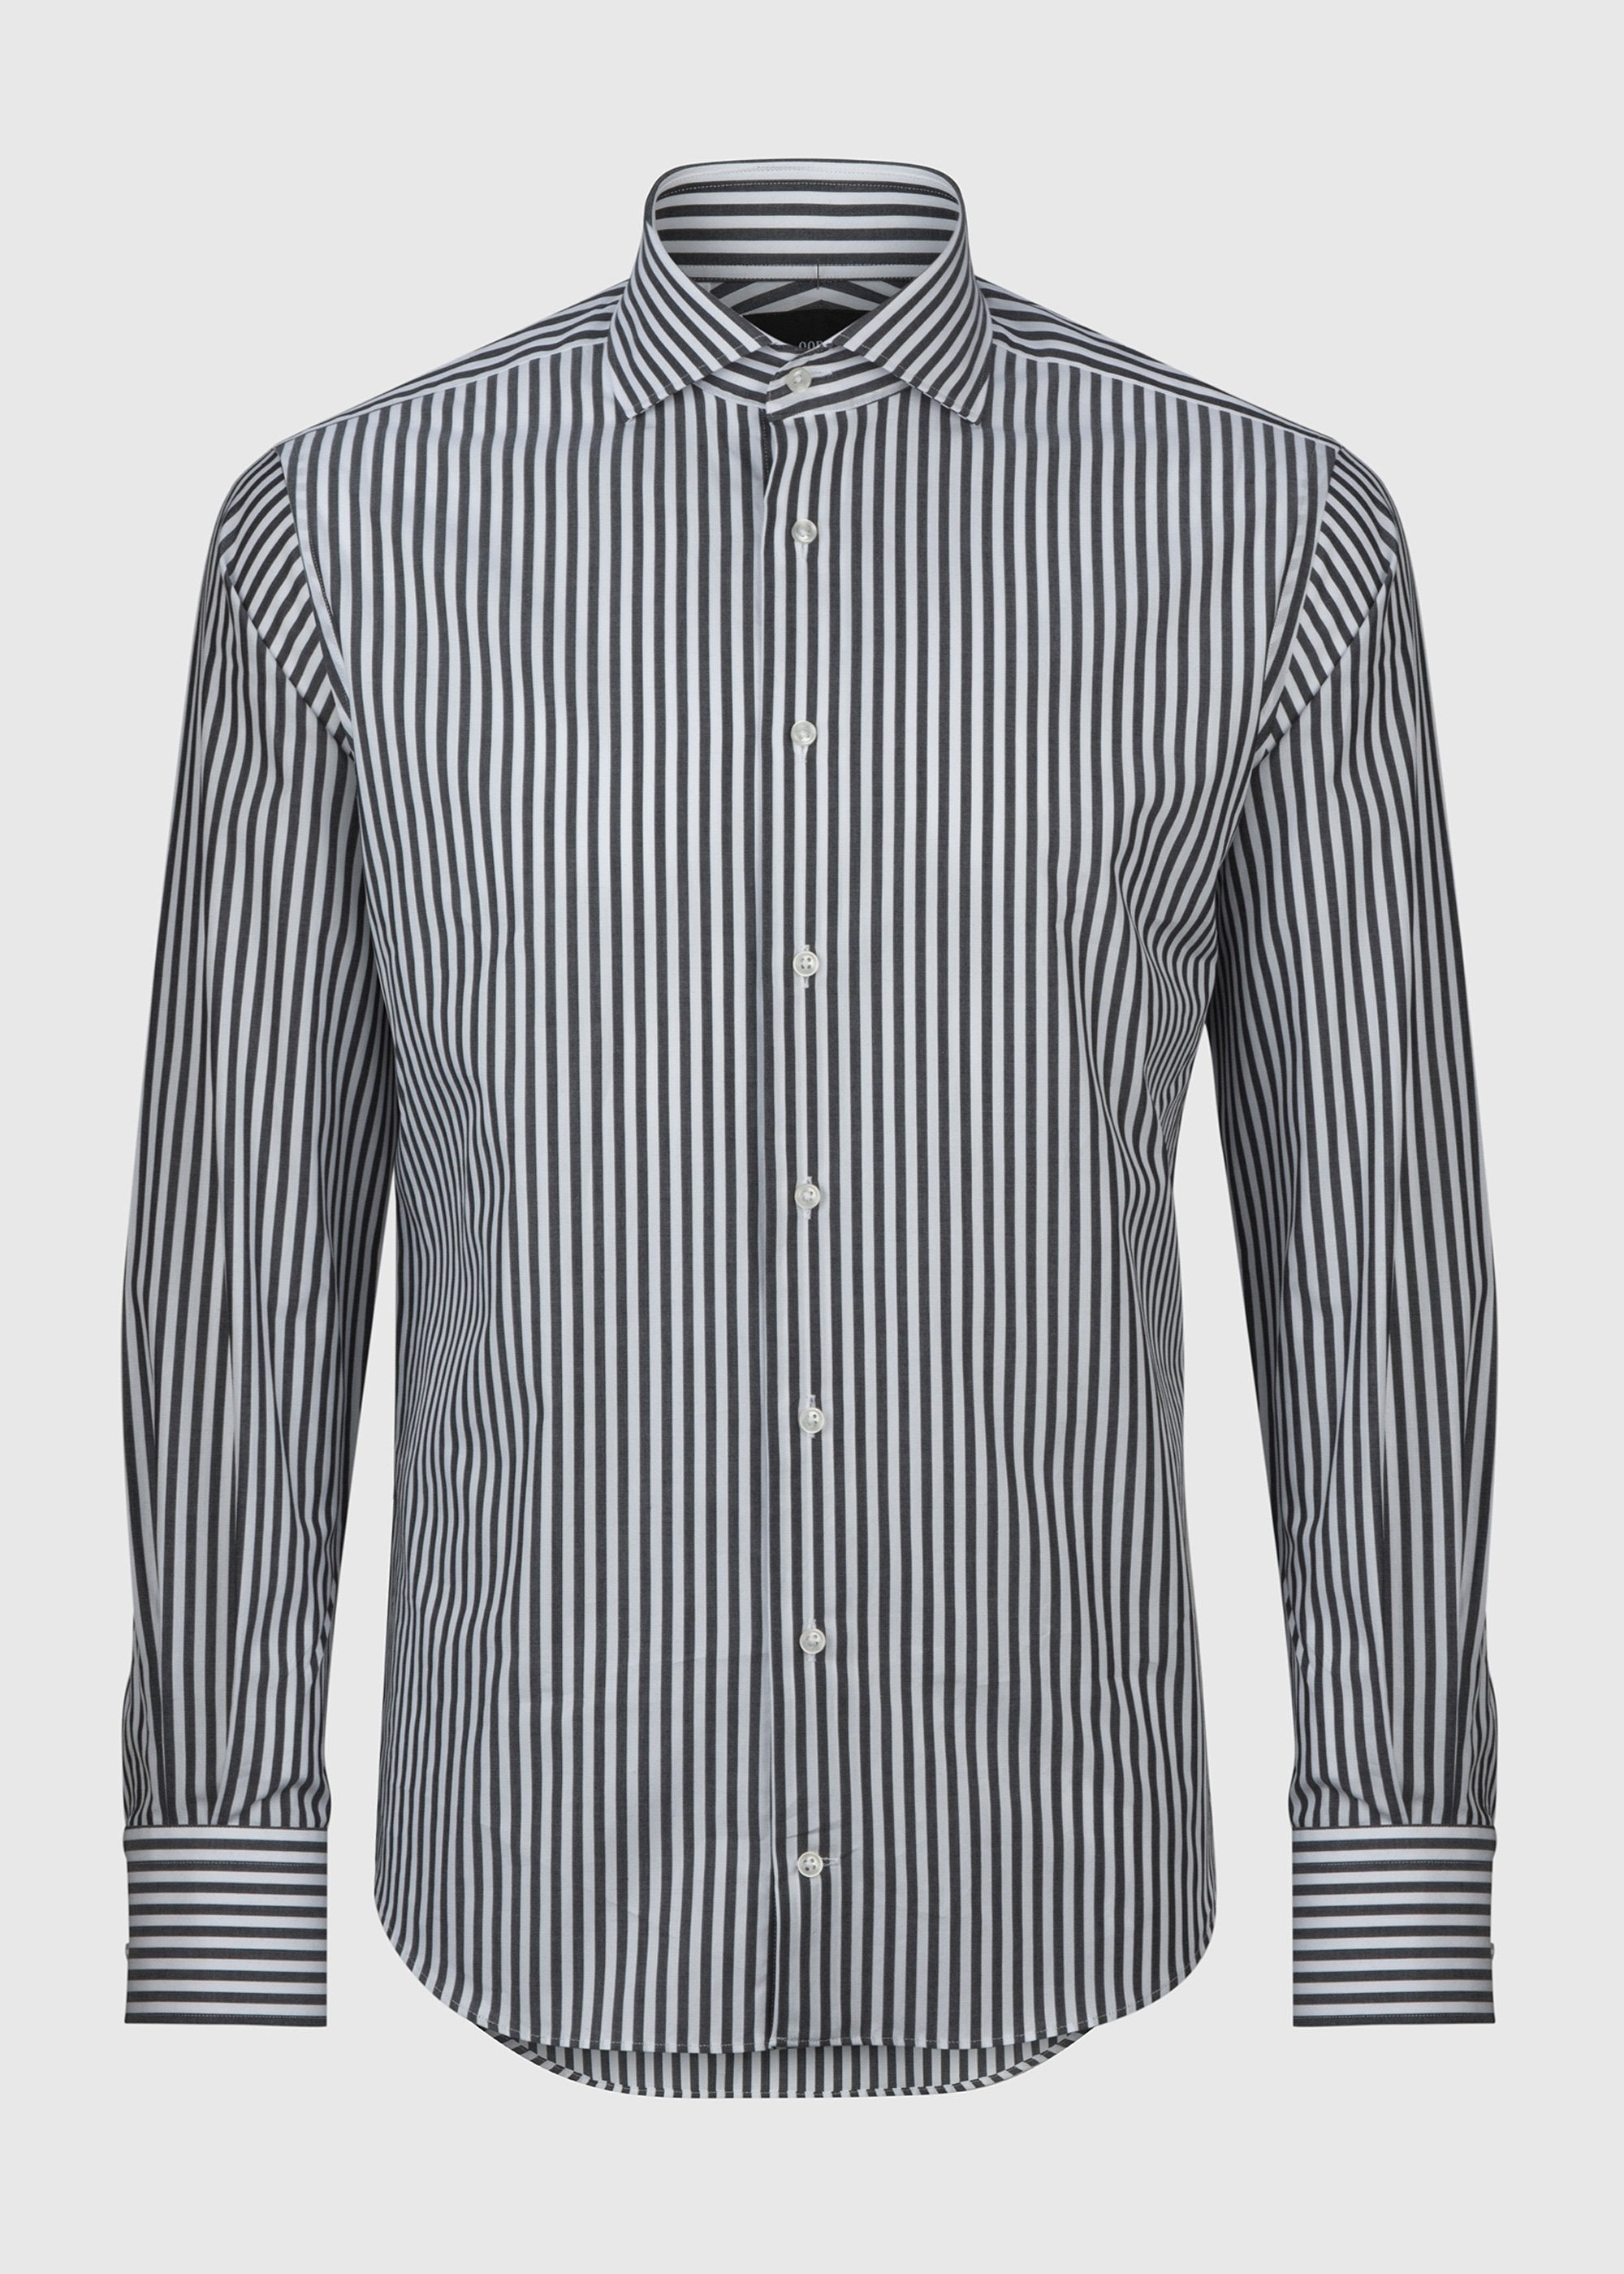 Pilot (BC) Shirt - Black White Pin Stripe